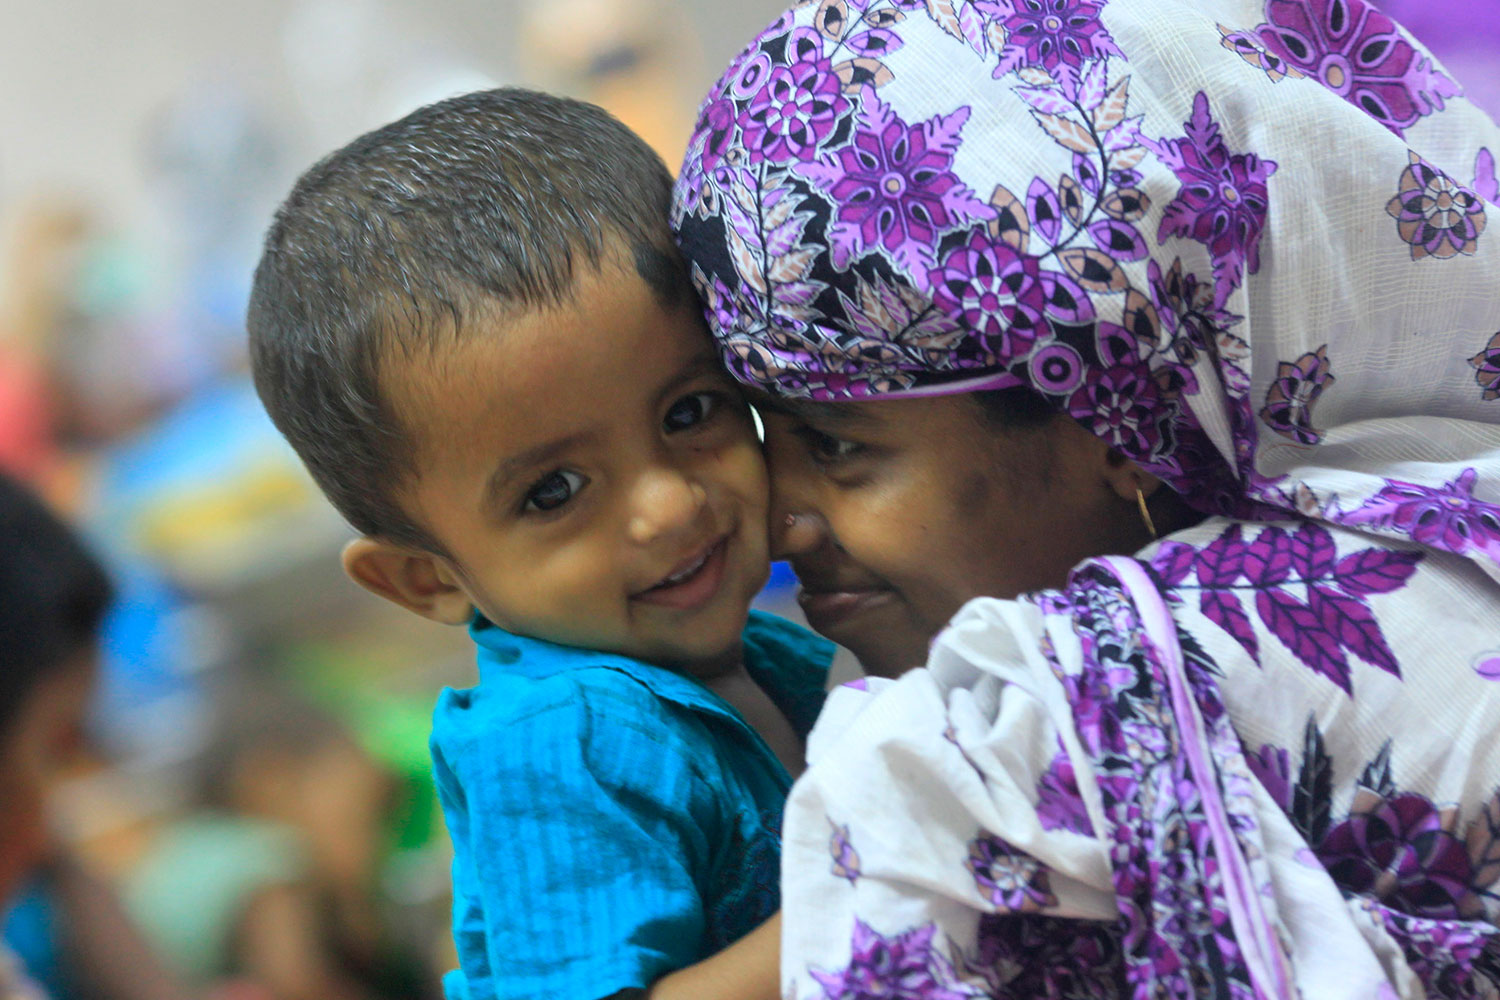 A mother plays with her thirteen-month old child Neerob, who is suffering from diarrhoea, at the International Centre for Diarrhoeal Disease & Research (ICDDRB), in Dhaka April 6, 2012.